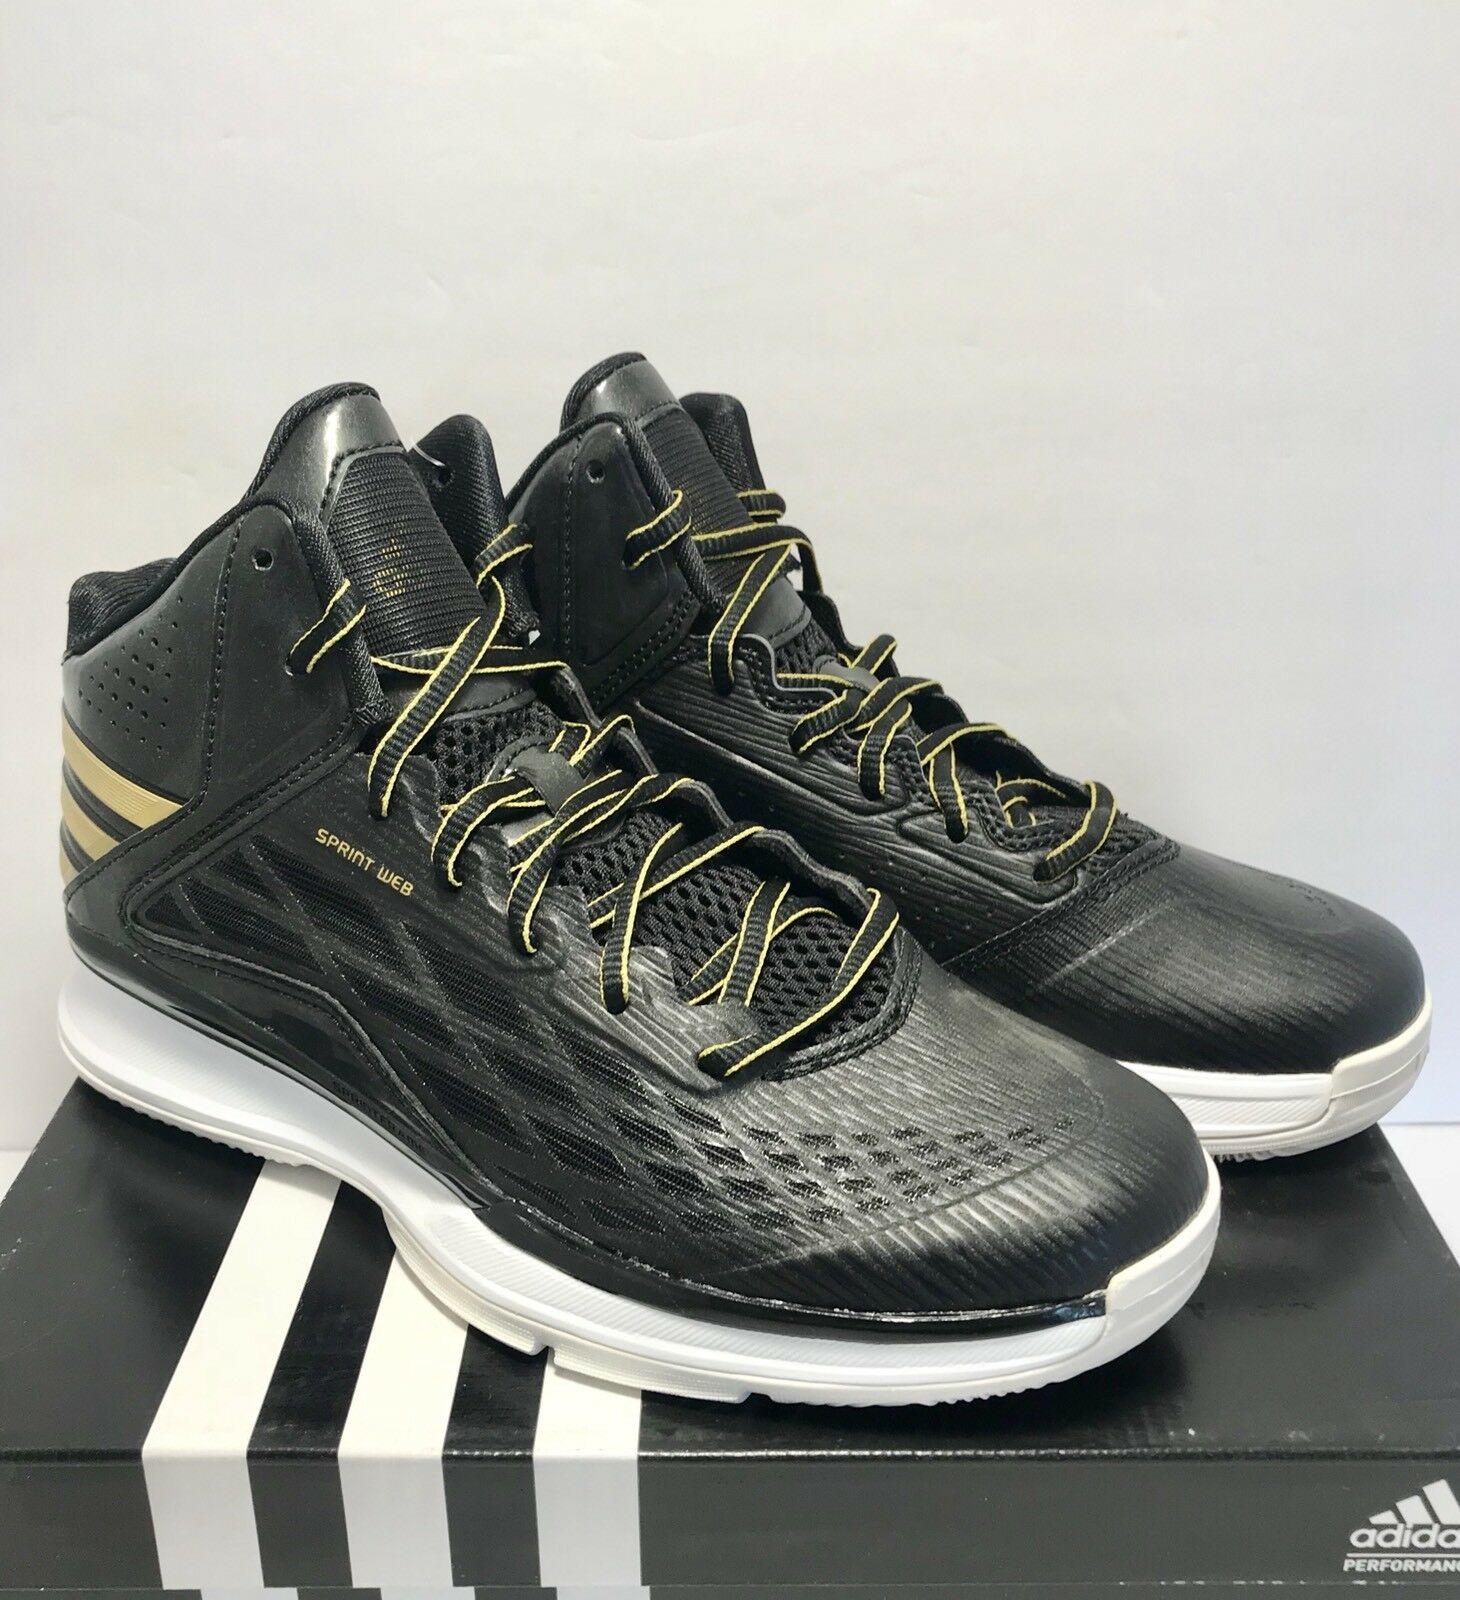 Adidas Mens Size 12.5 Performance Transcend Basketball Training shoes Black gold